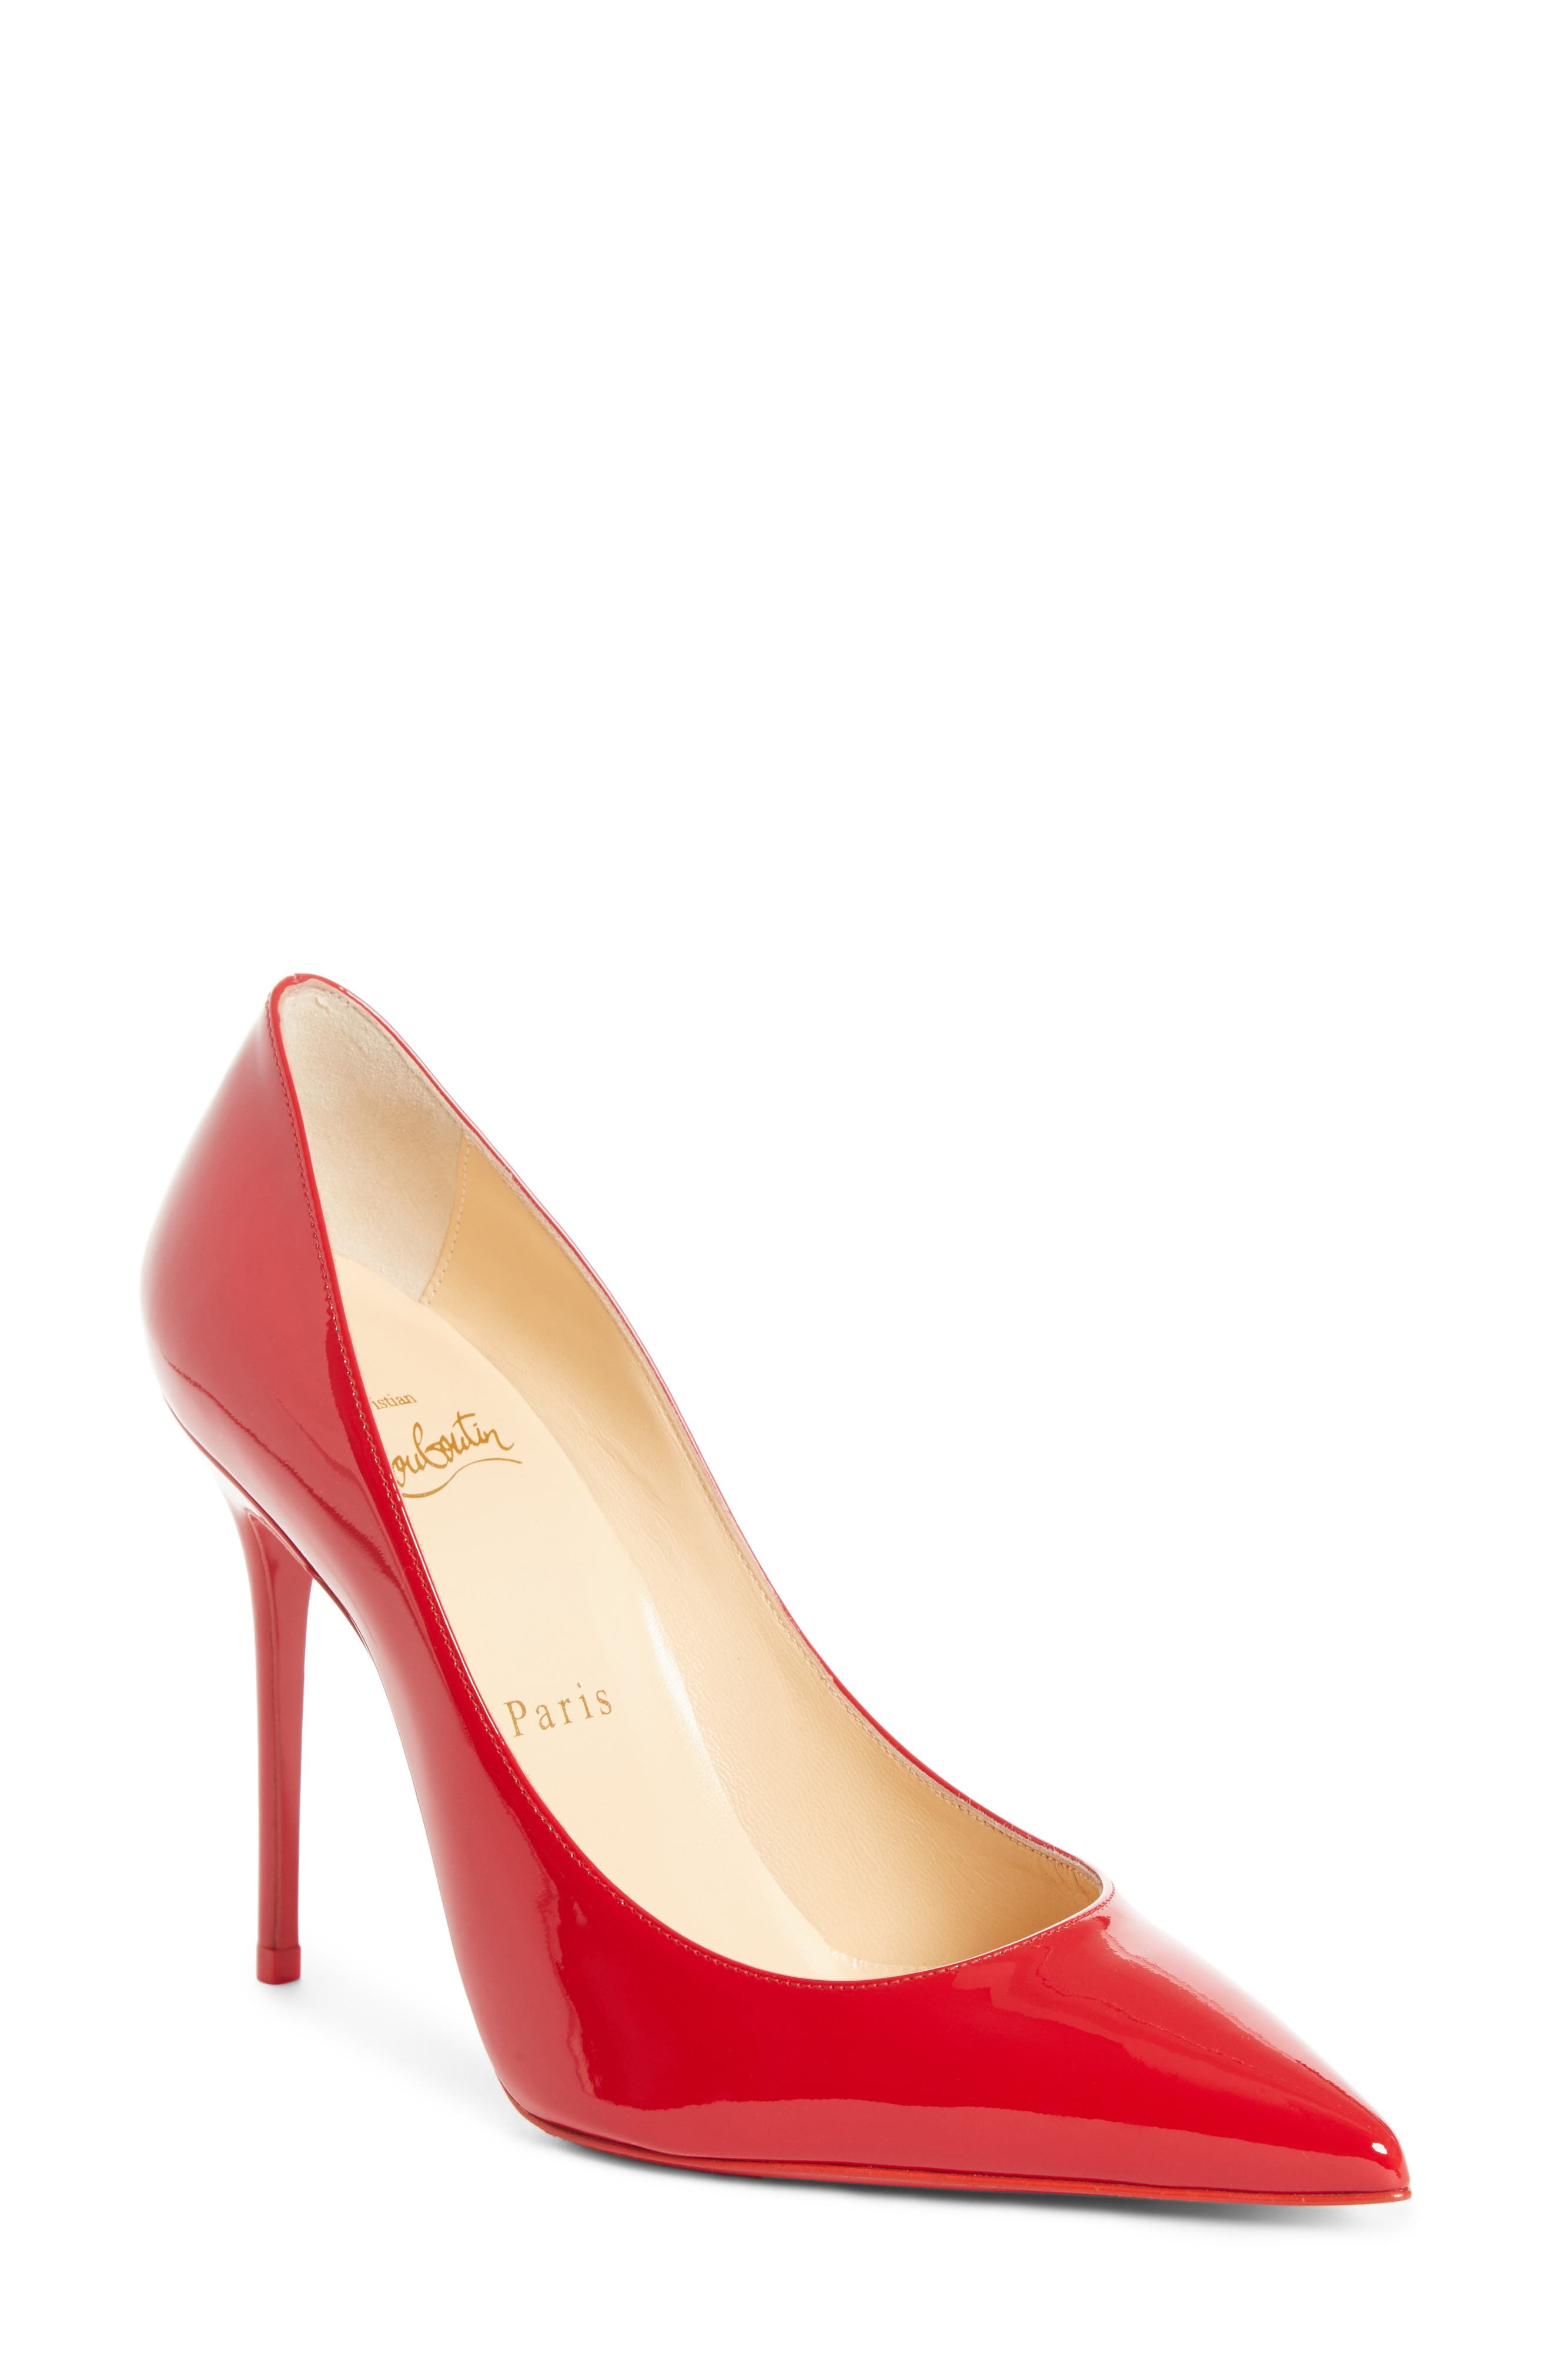 'Decollete' Pointy Toe Pump,                             Main thumbnail 1, color,                             LOUBI RED